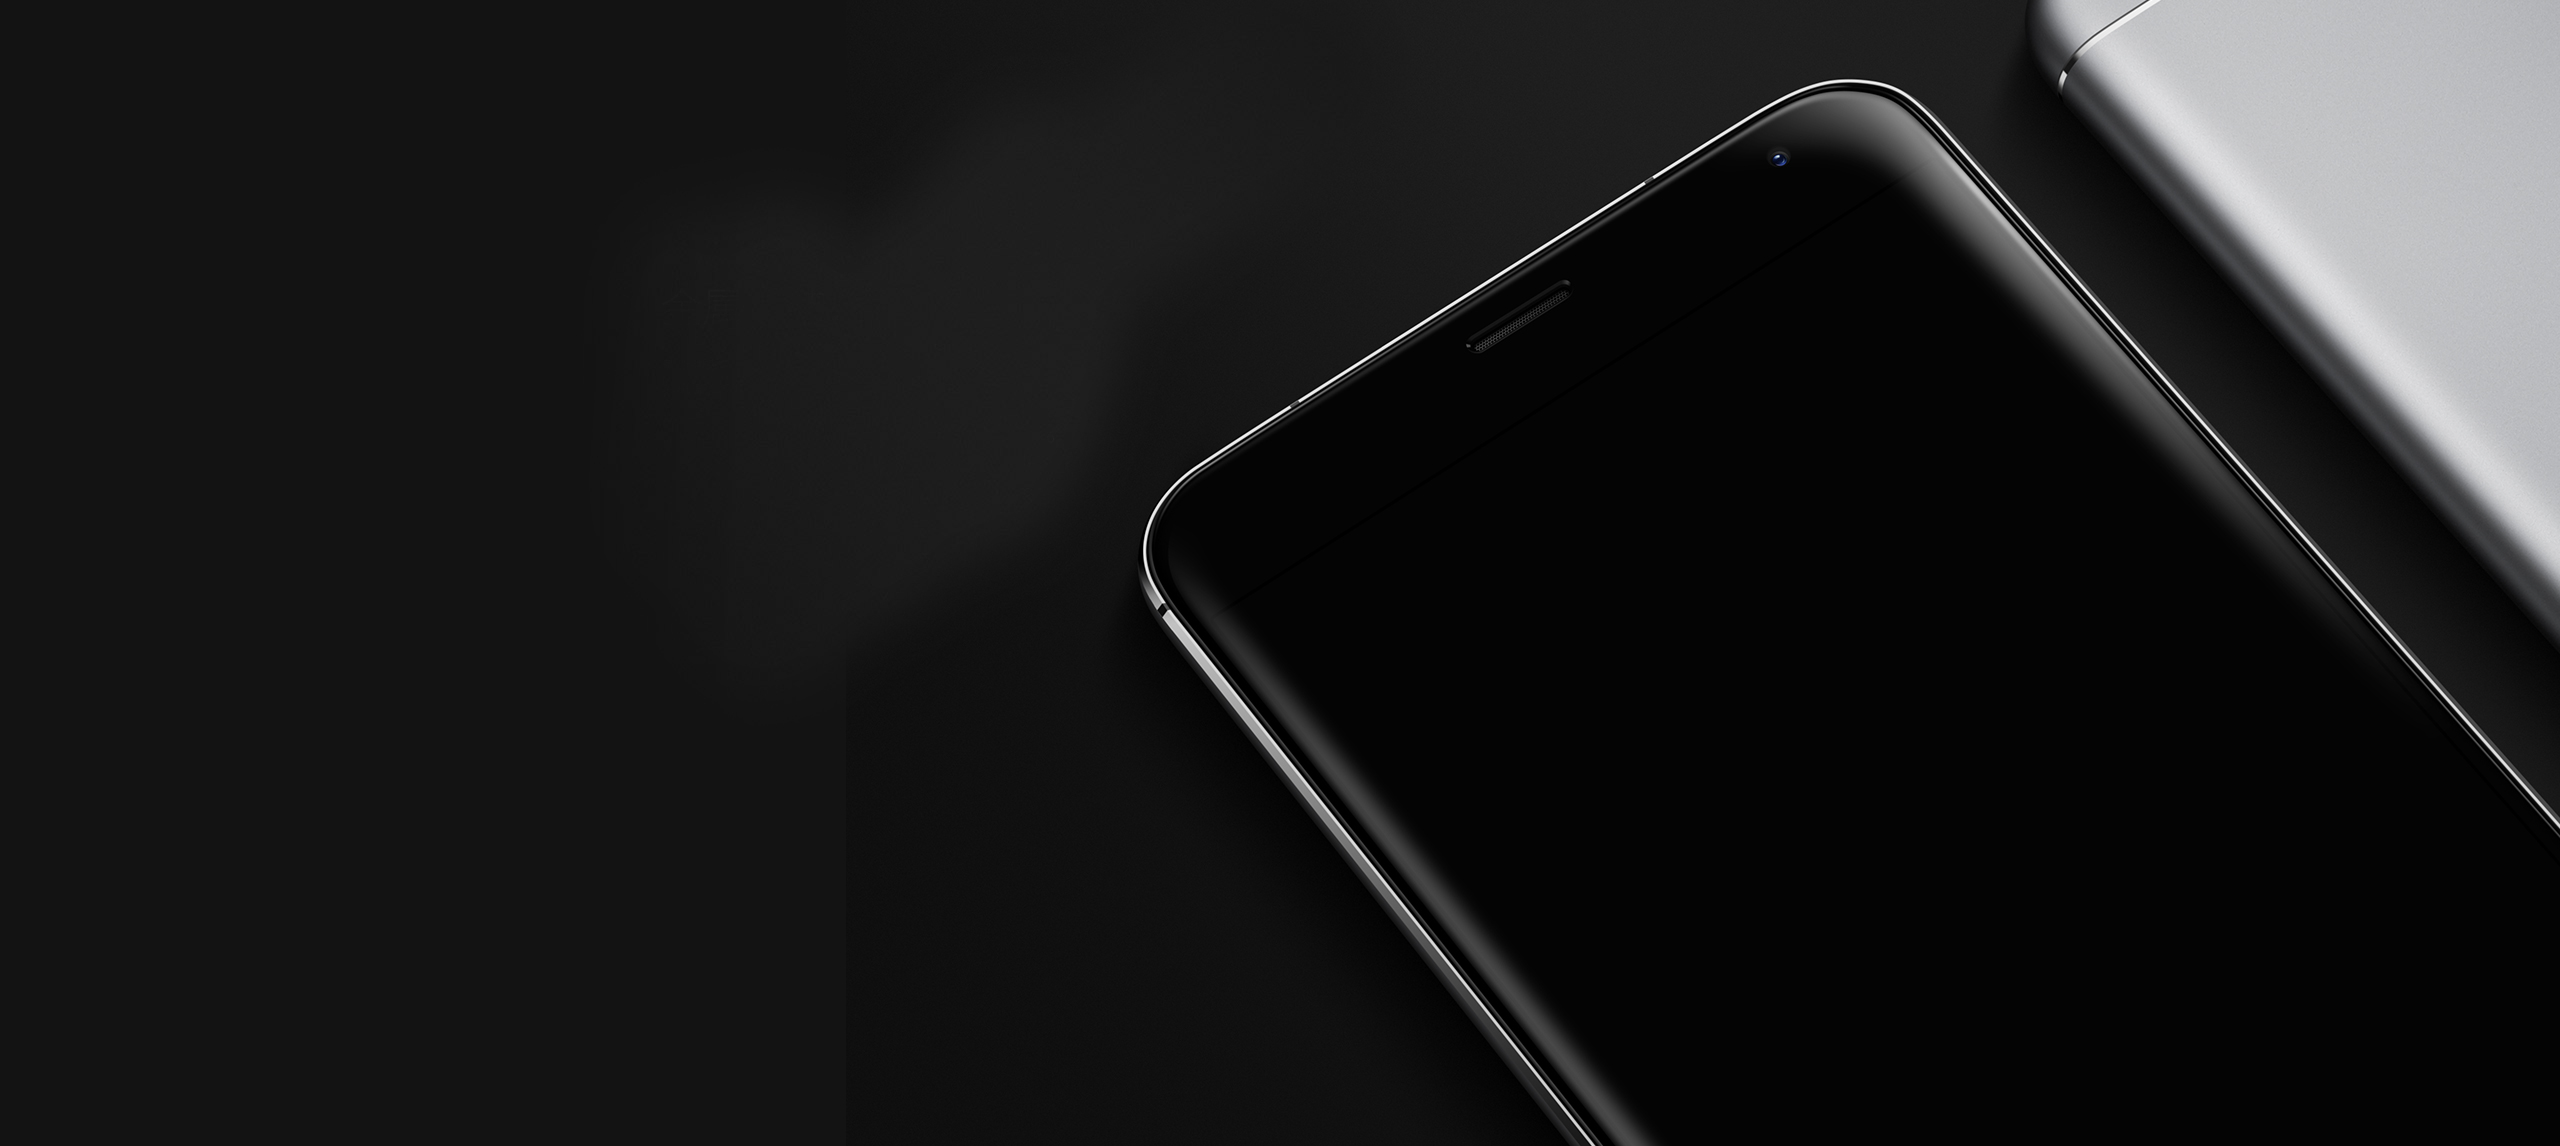 meizu once more